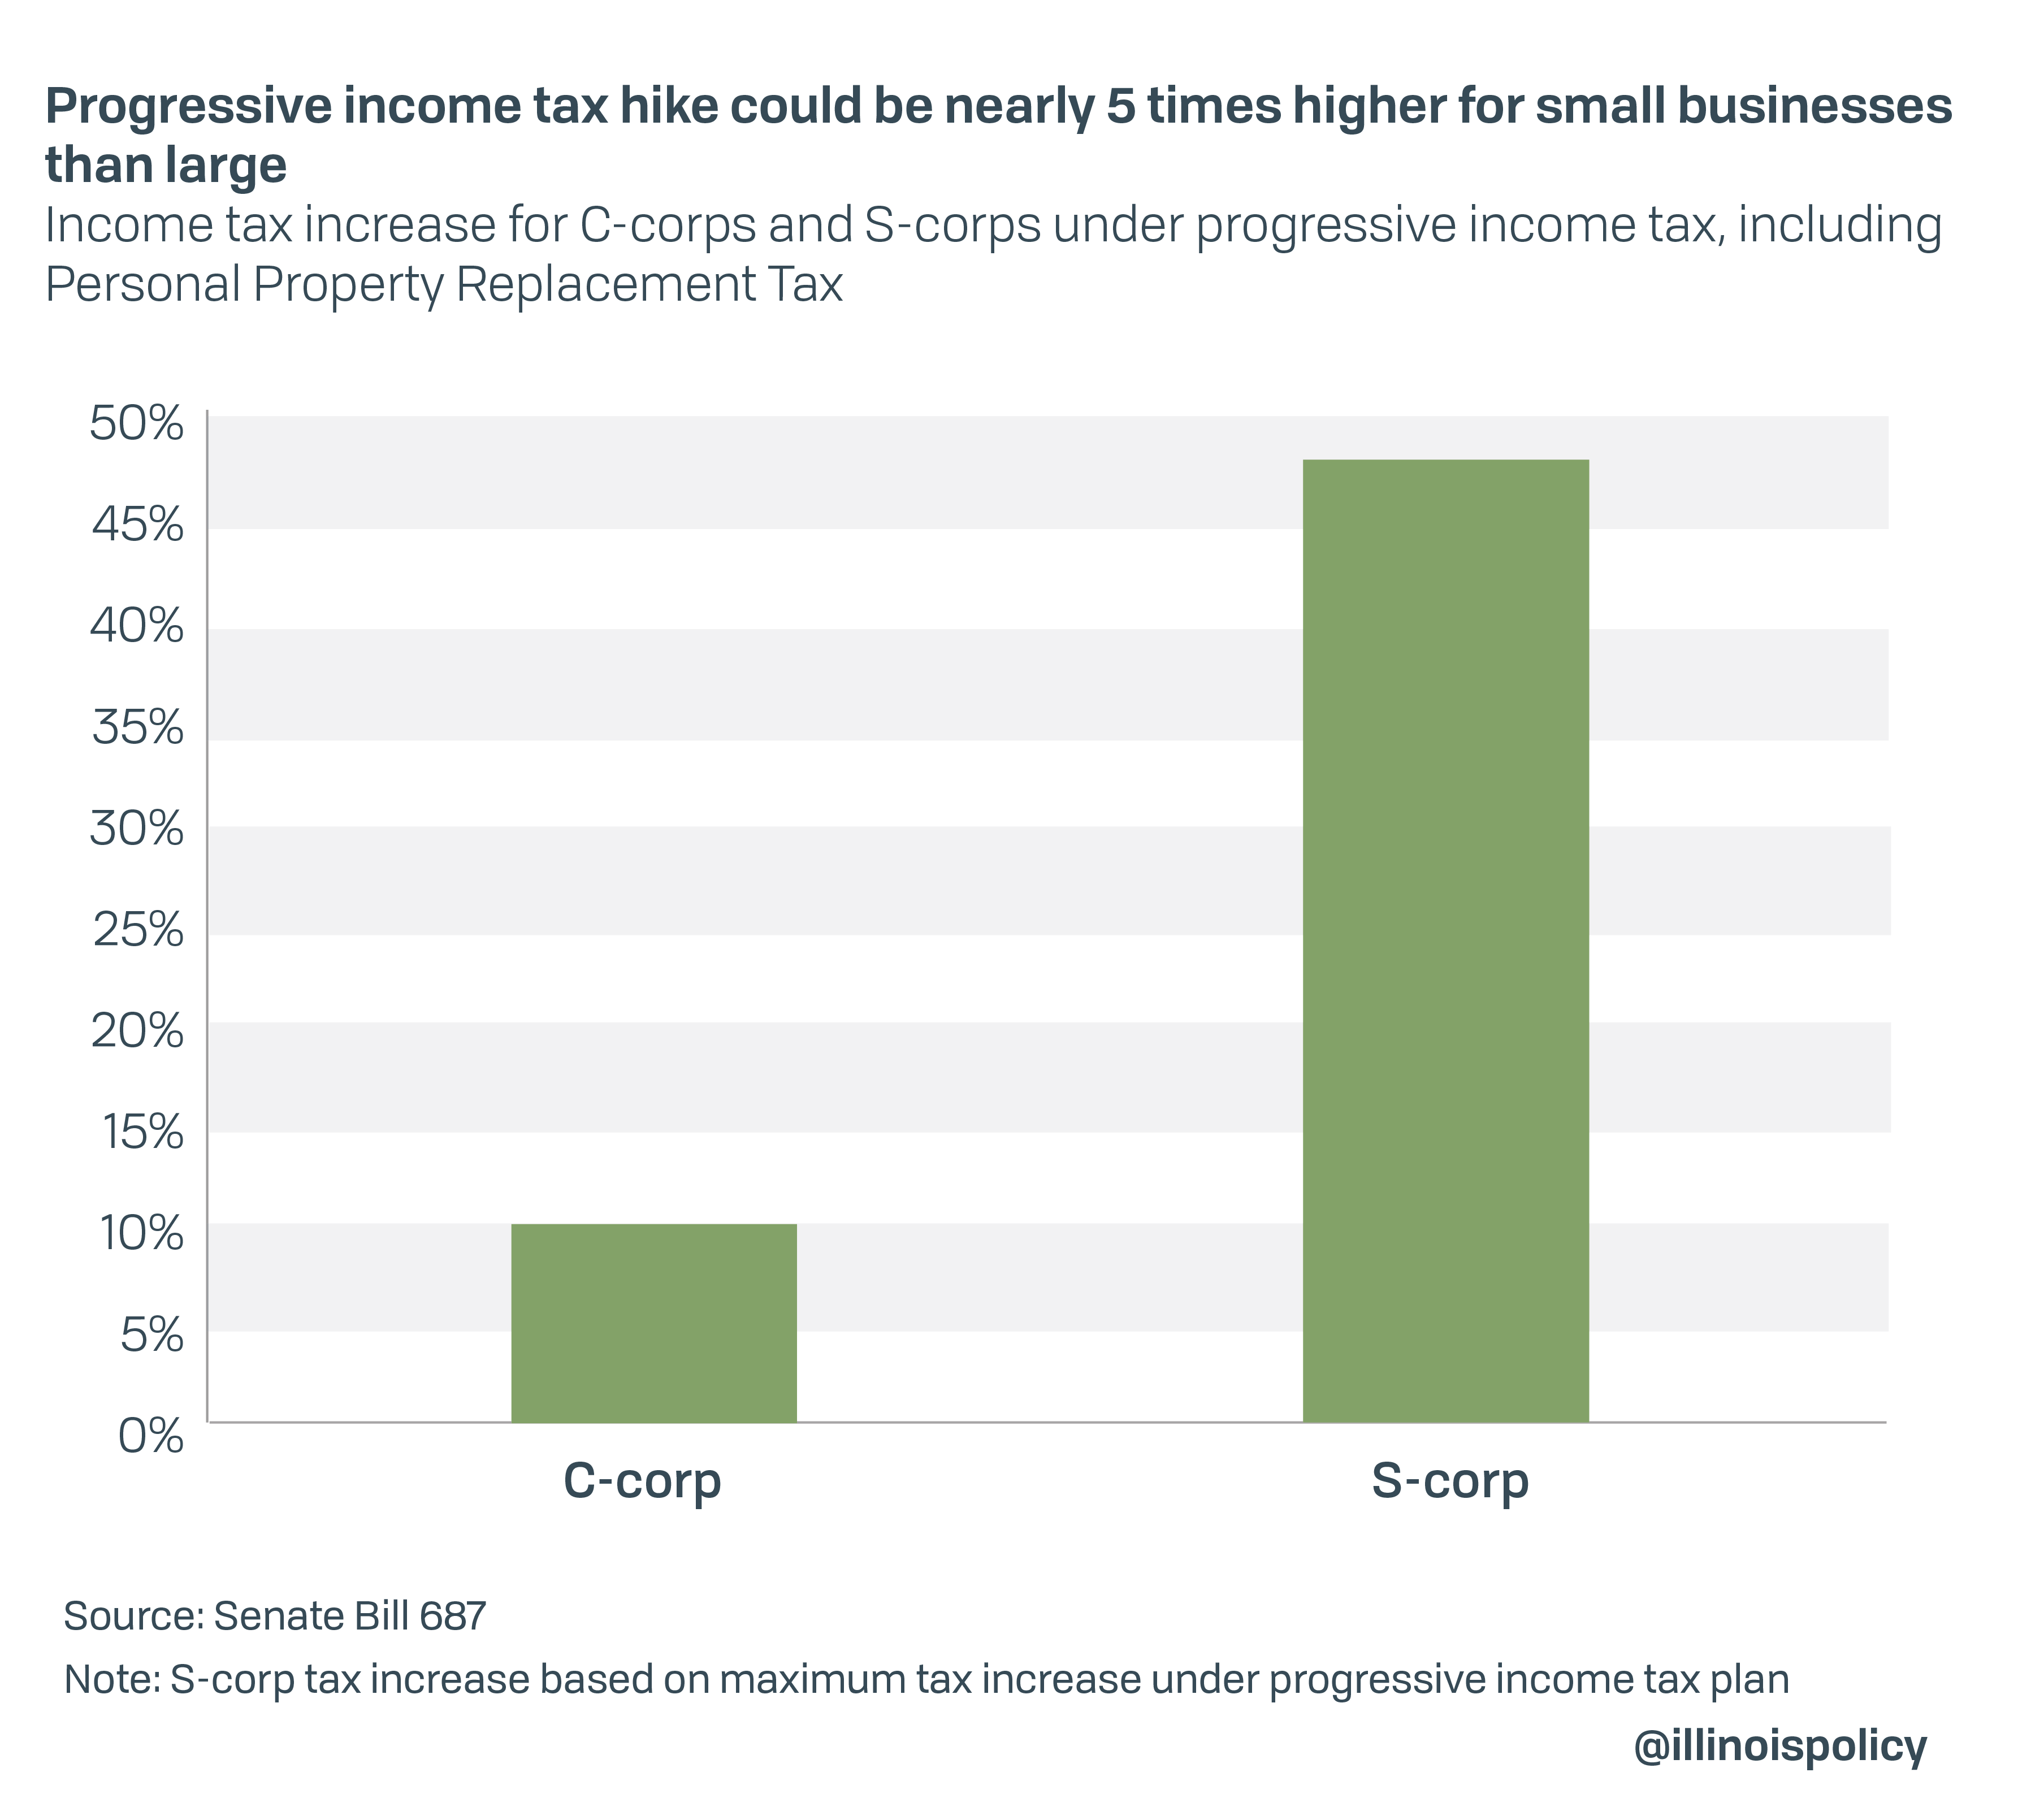 Progressive income tax hike could be nearly 5 times higher for small businesses than large